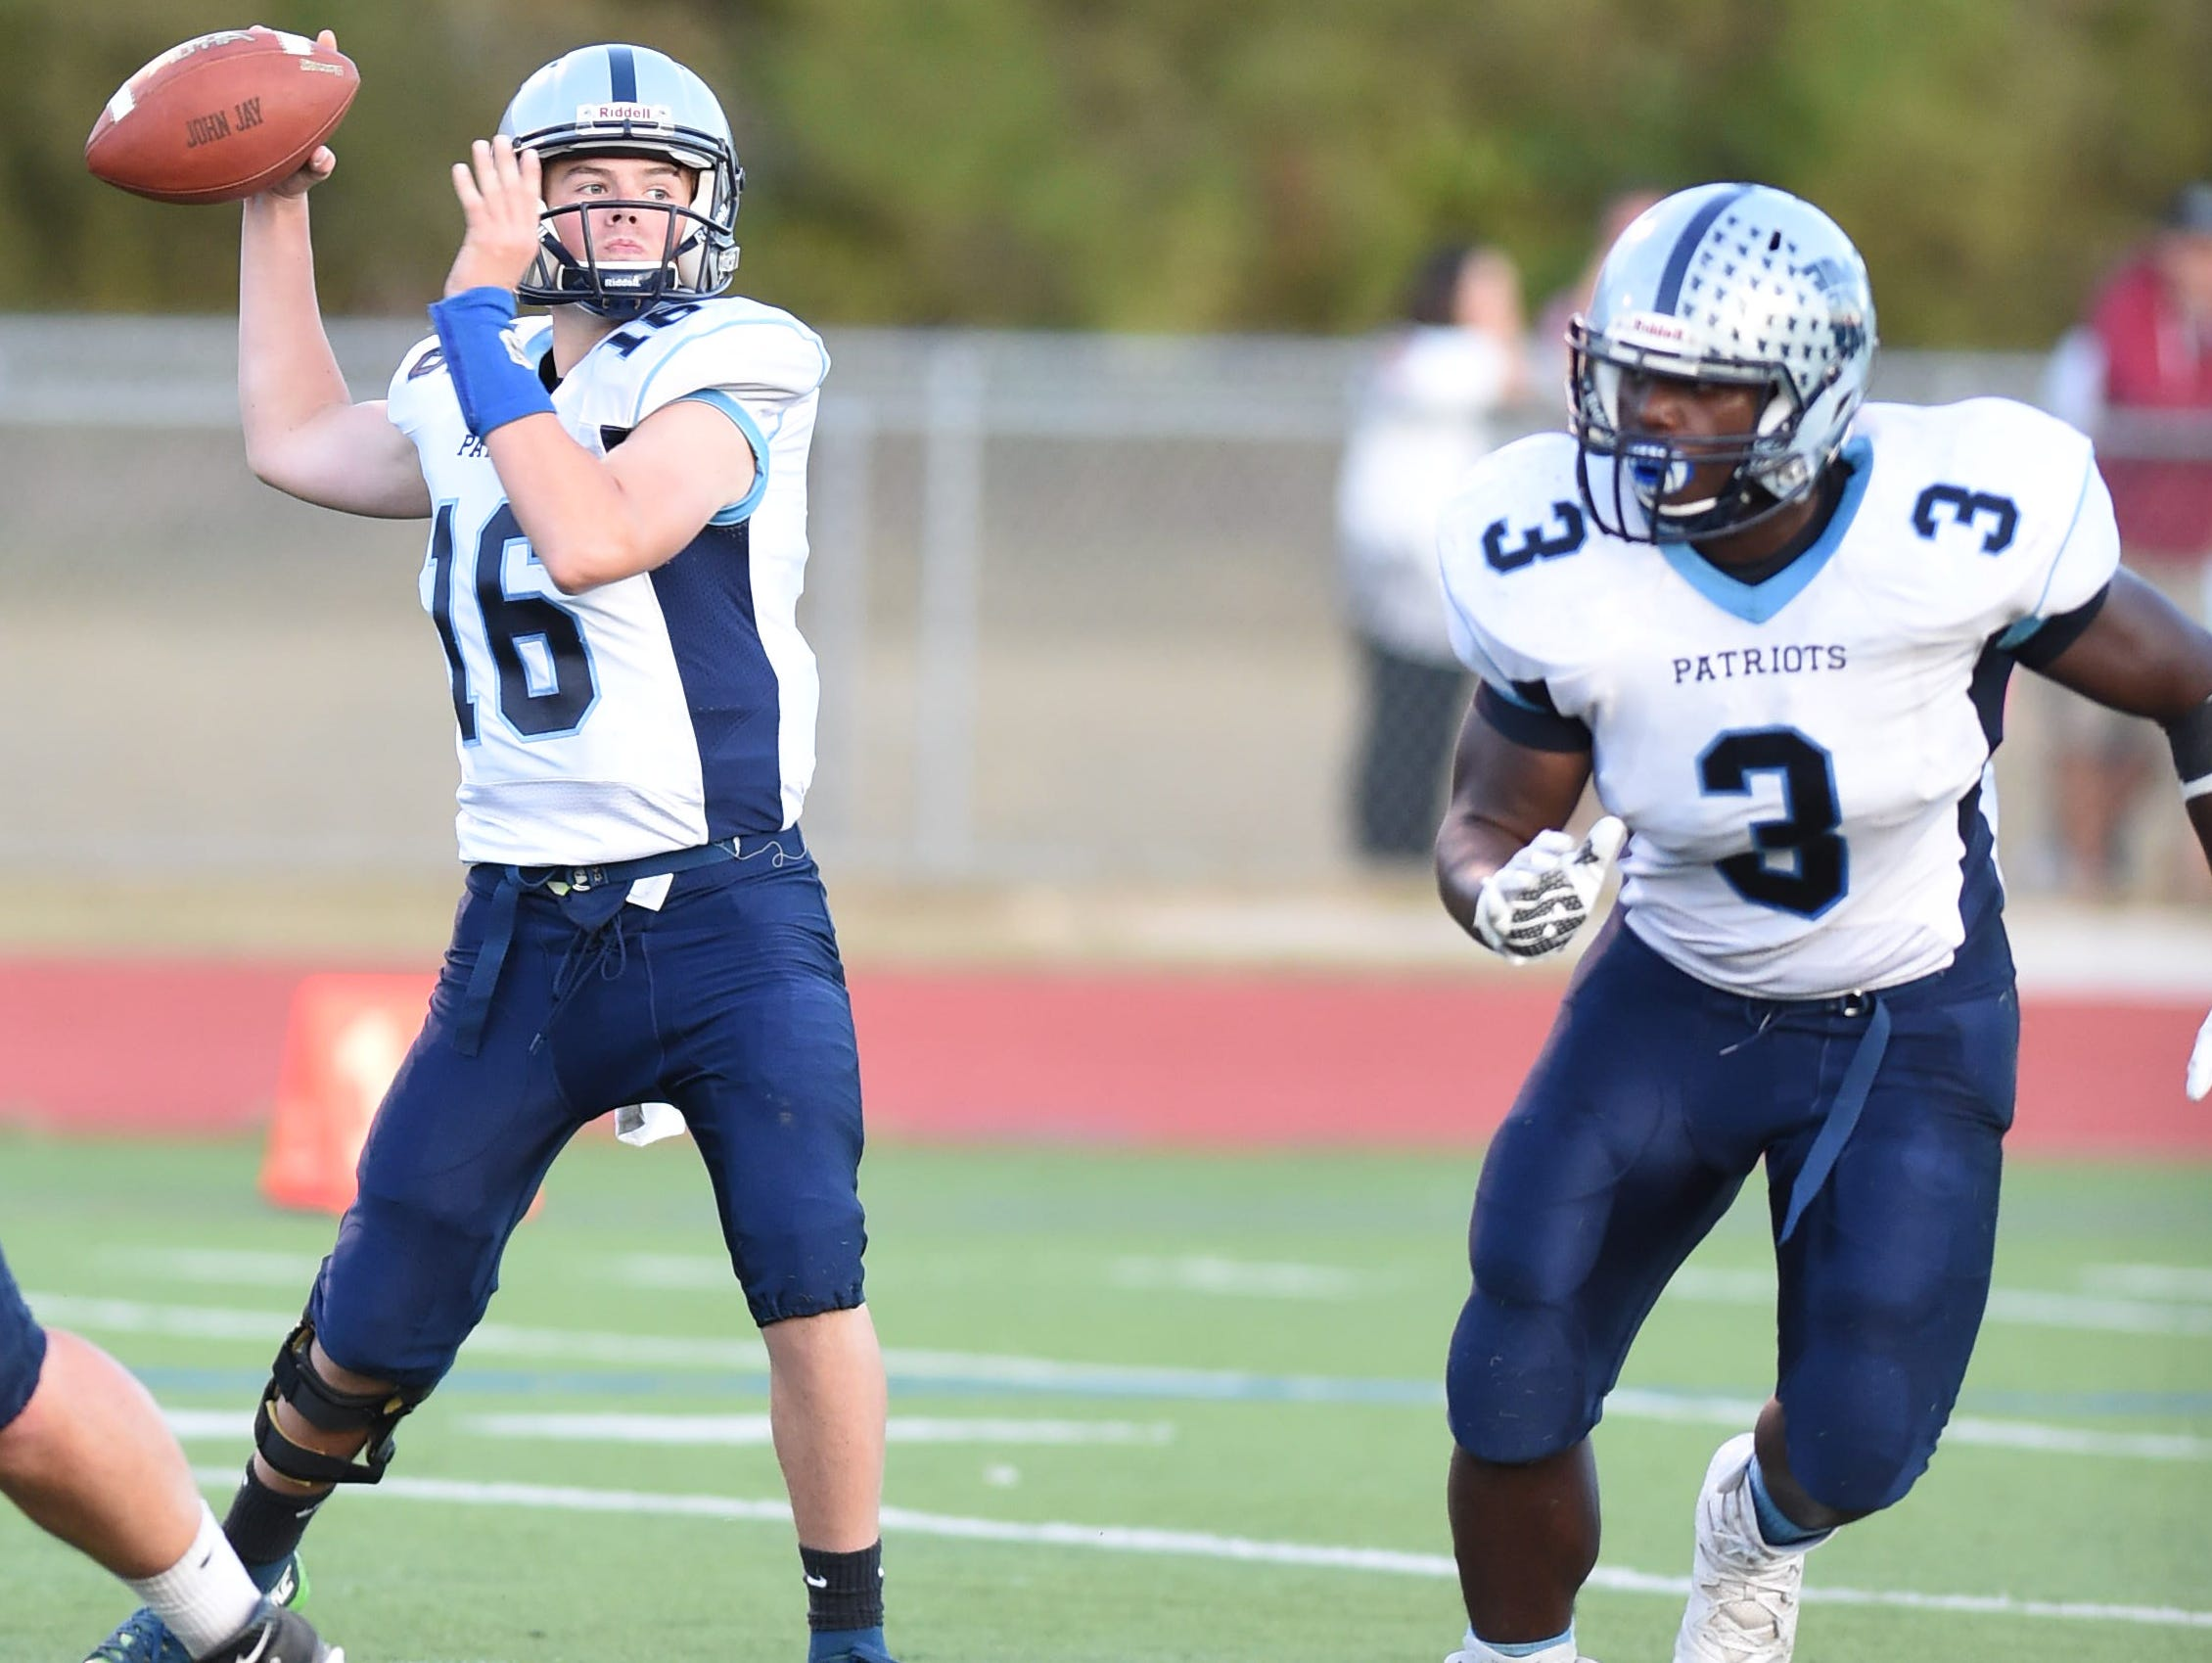 From right, John Jay's Calvin Anthony covers quarterback, Richie Eletto during a game versus Arlington High School on Friday September 16, 2016.